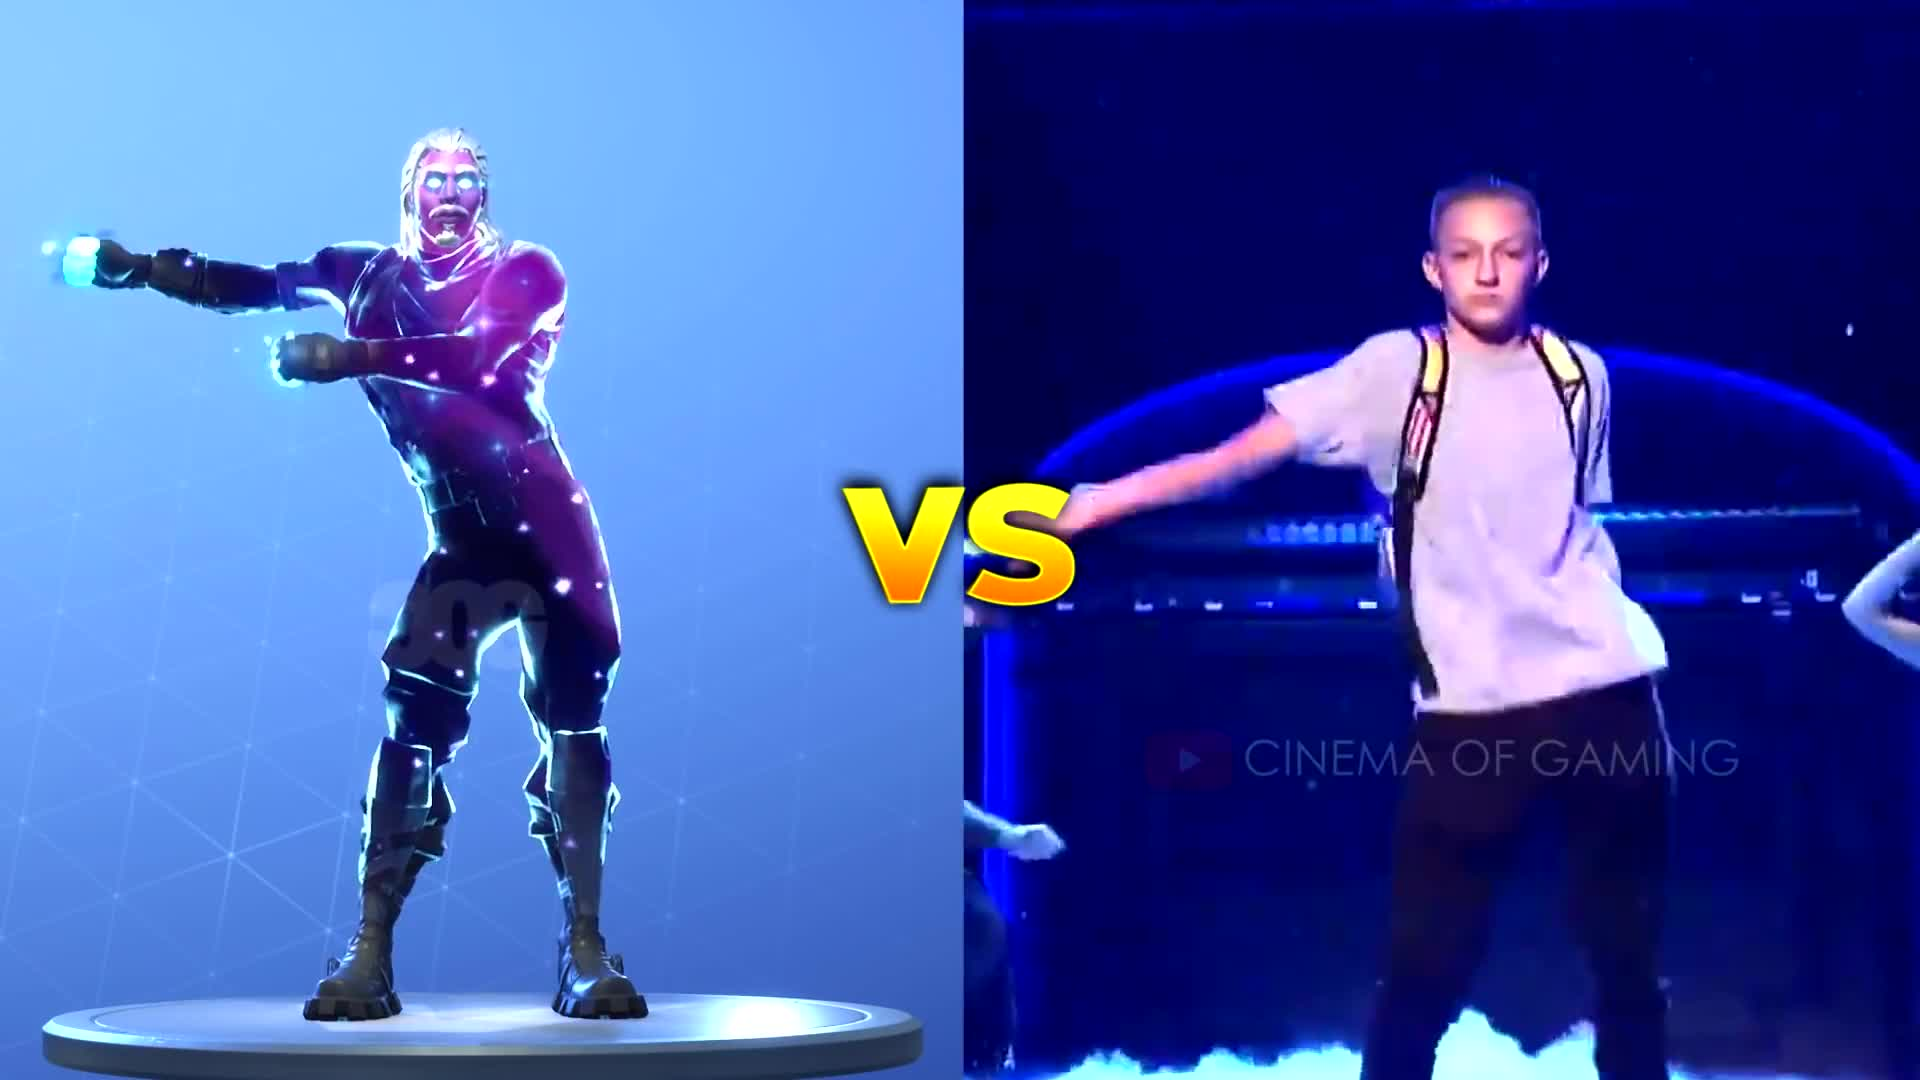 Fortnite Dance Real Life Gifs Search Search Share On Homdor